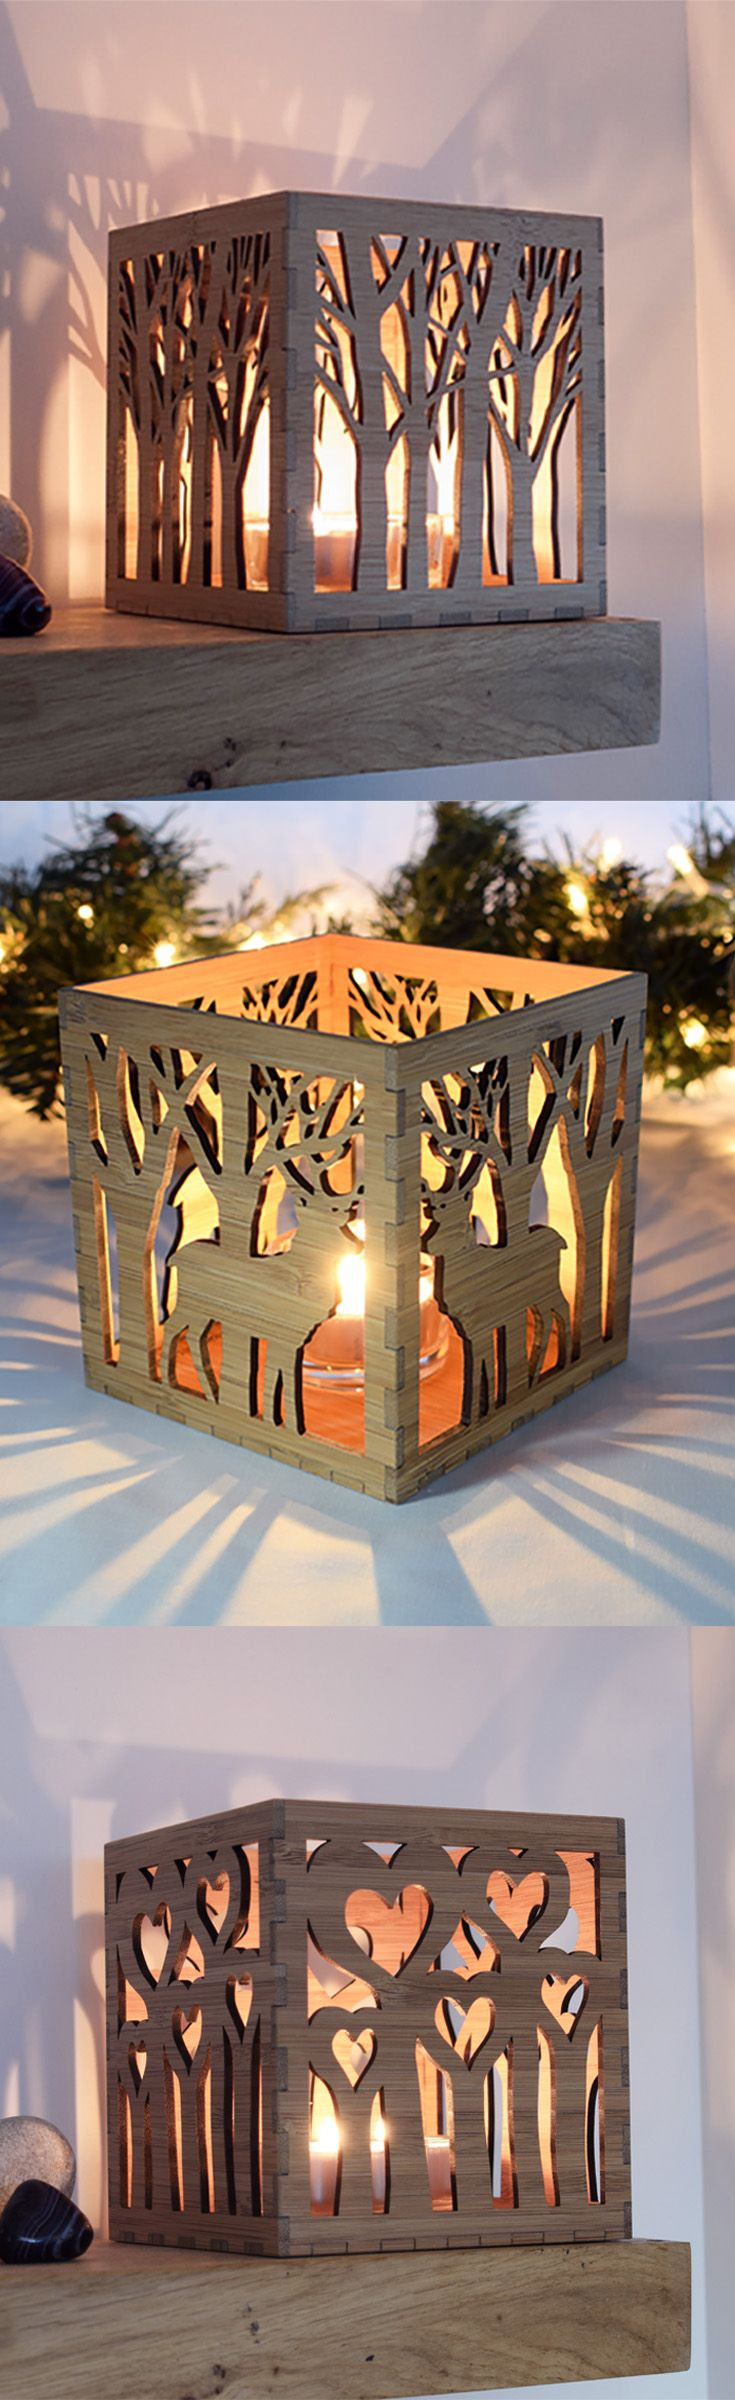 Silhouette Candle Lanterns, made from eco-friendly bamboo. Tea Light Holders by Beam Designs, UK designed and made, available on Etsy. Our natural Votive Candle Holders make a great 5th Anniversary Gift, Wedding Present or Christmas Gift Idea.